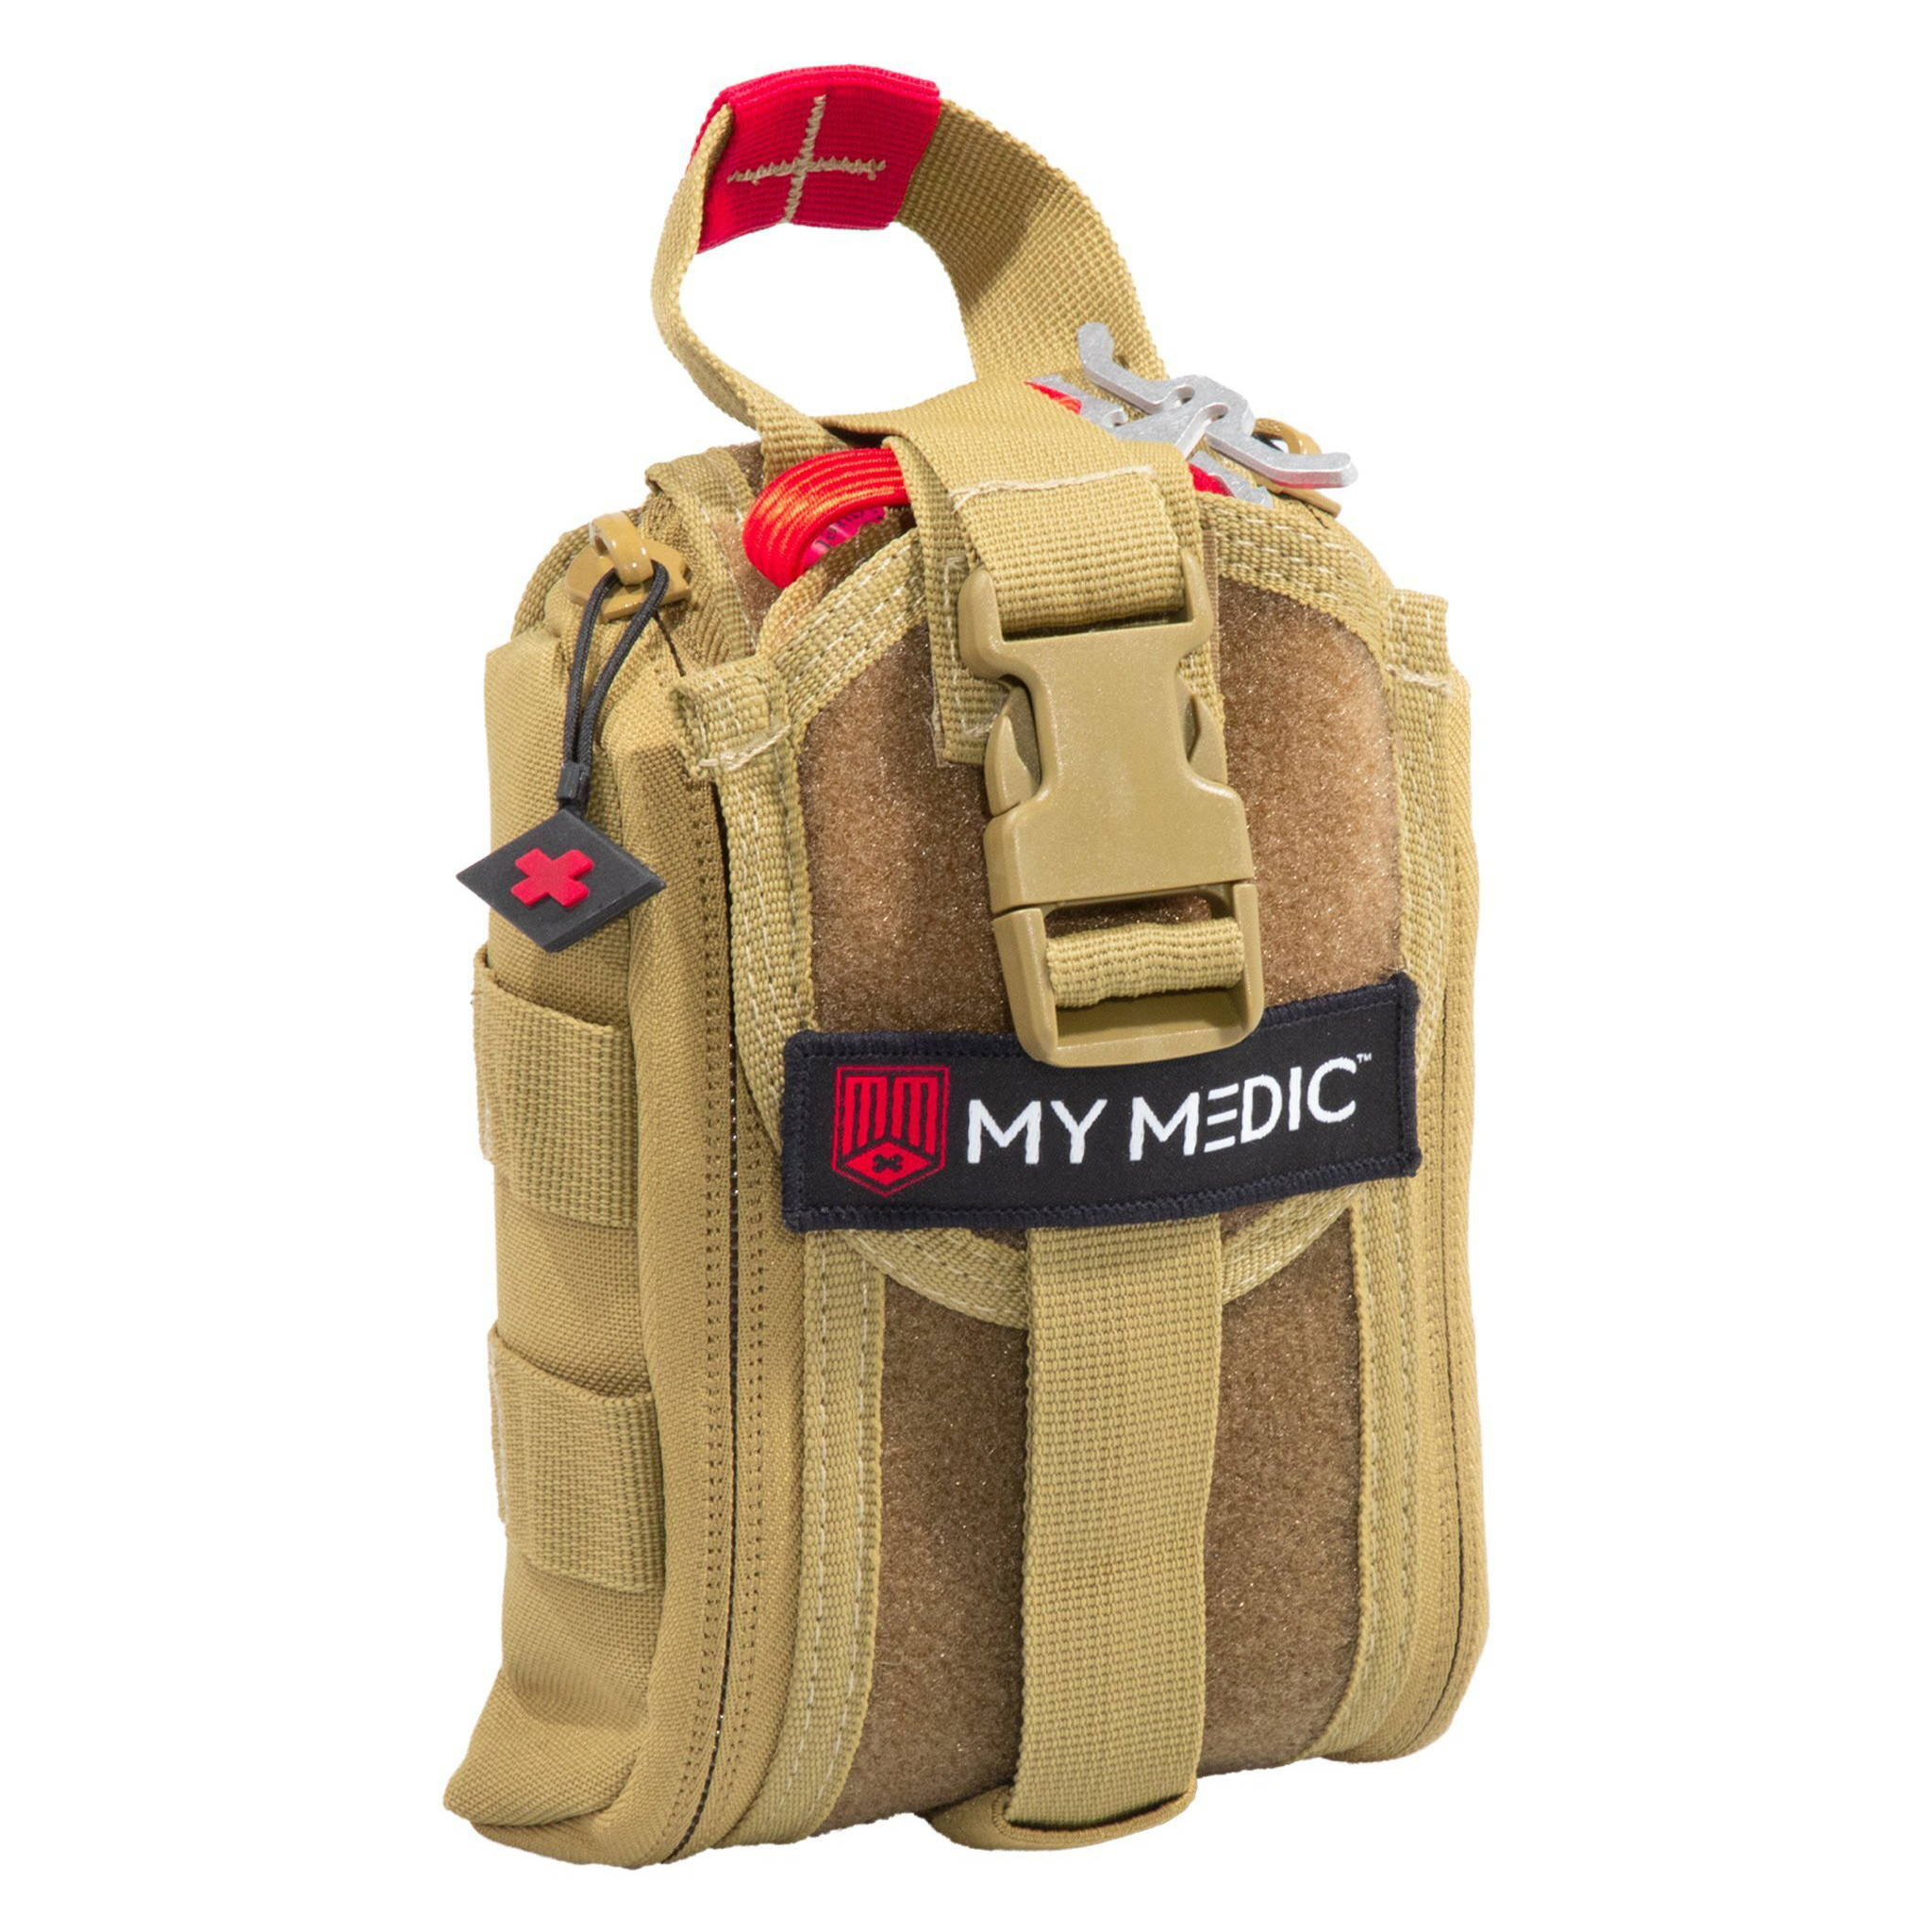 First aid kit, first aid supplies, medical kit, first aid kit items, portable medical kit, best first aid kit, first aid bag, car first aid kit, first aid kit supplies, Range Medic First Aid Kit, Range Medic